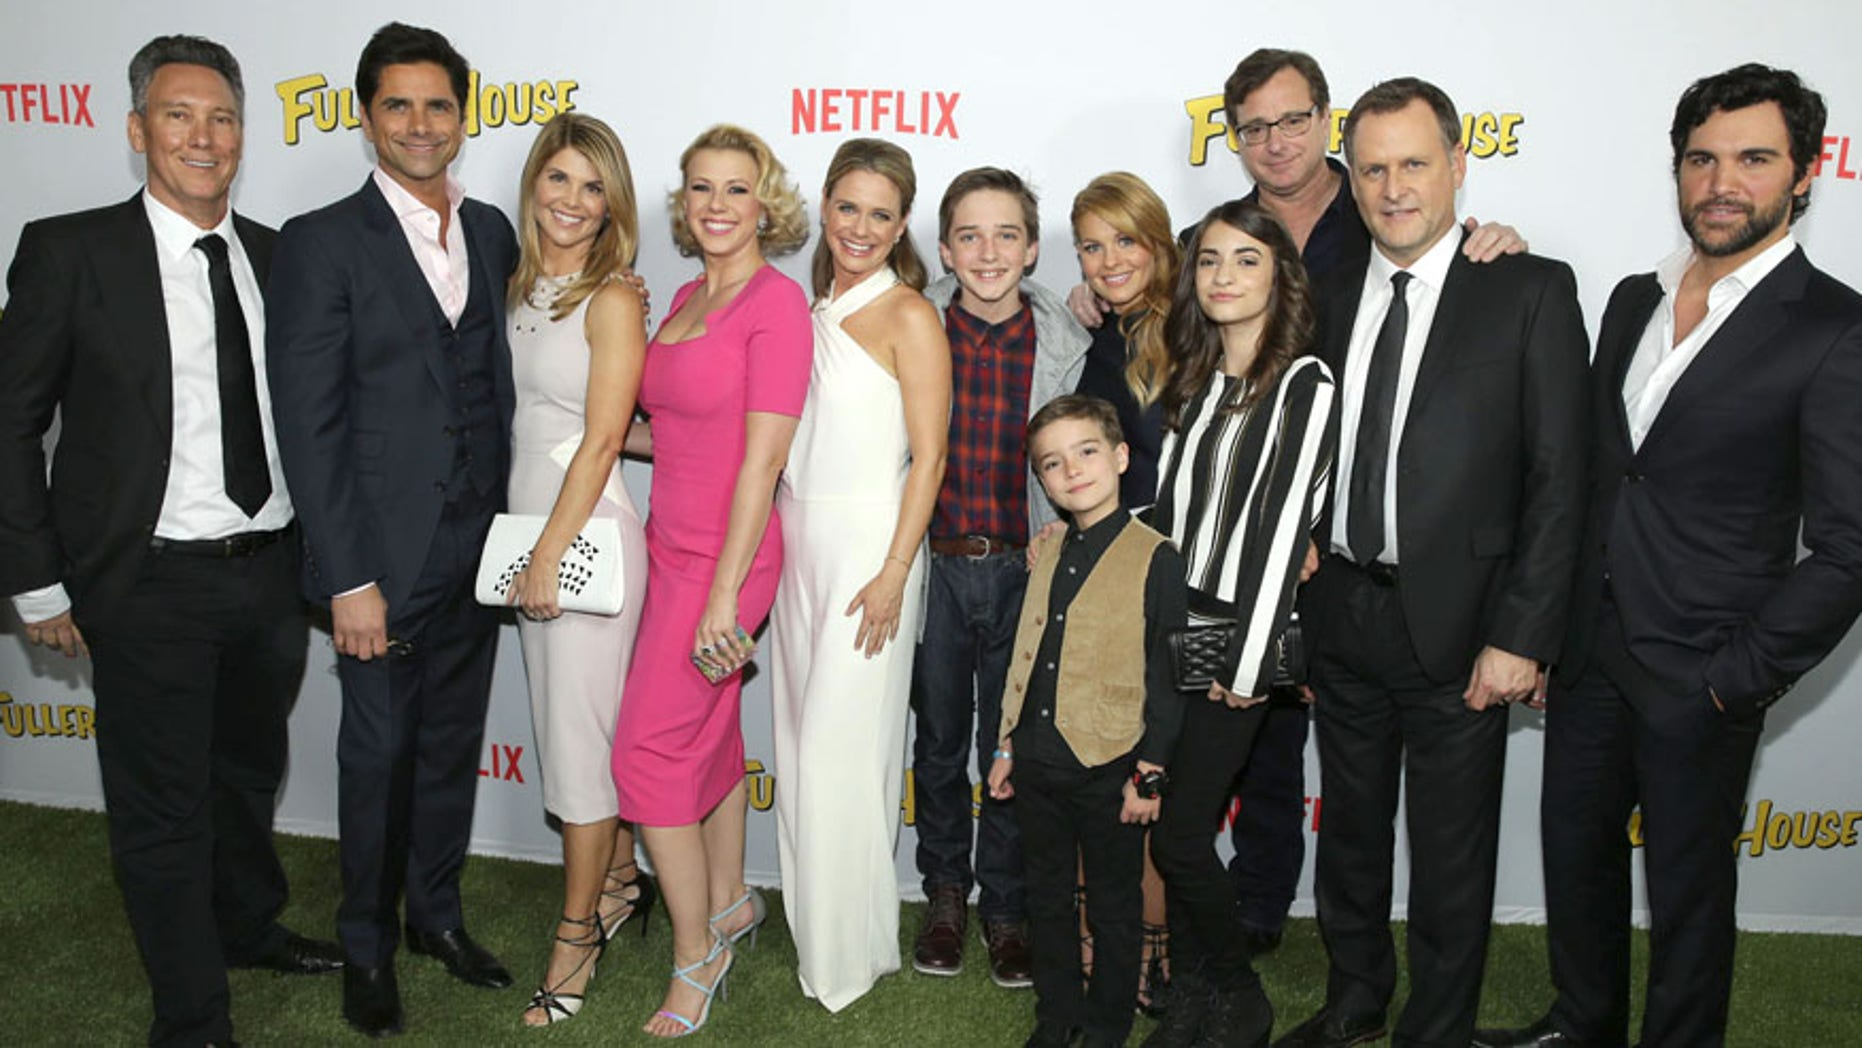 "Exec. Producer Jeff Franklin, John Stamos, Lori Loughlin, Jodie Sweetin, Andrea Barber, Michael Campion, Candace Cameron Bure, Elias Harger, Soni Bringas, Bob Saget, Dave Coulier and Juan Pablo Di Pace seen at Netflix Premiere of ""Fuller House"" at The Grove on February 16, 2016, in Los Angeles, CA. (Photo by Eric Charbonneau/Invision for Netflix/AP Images)"